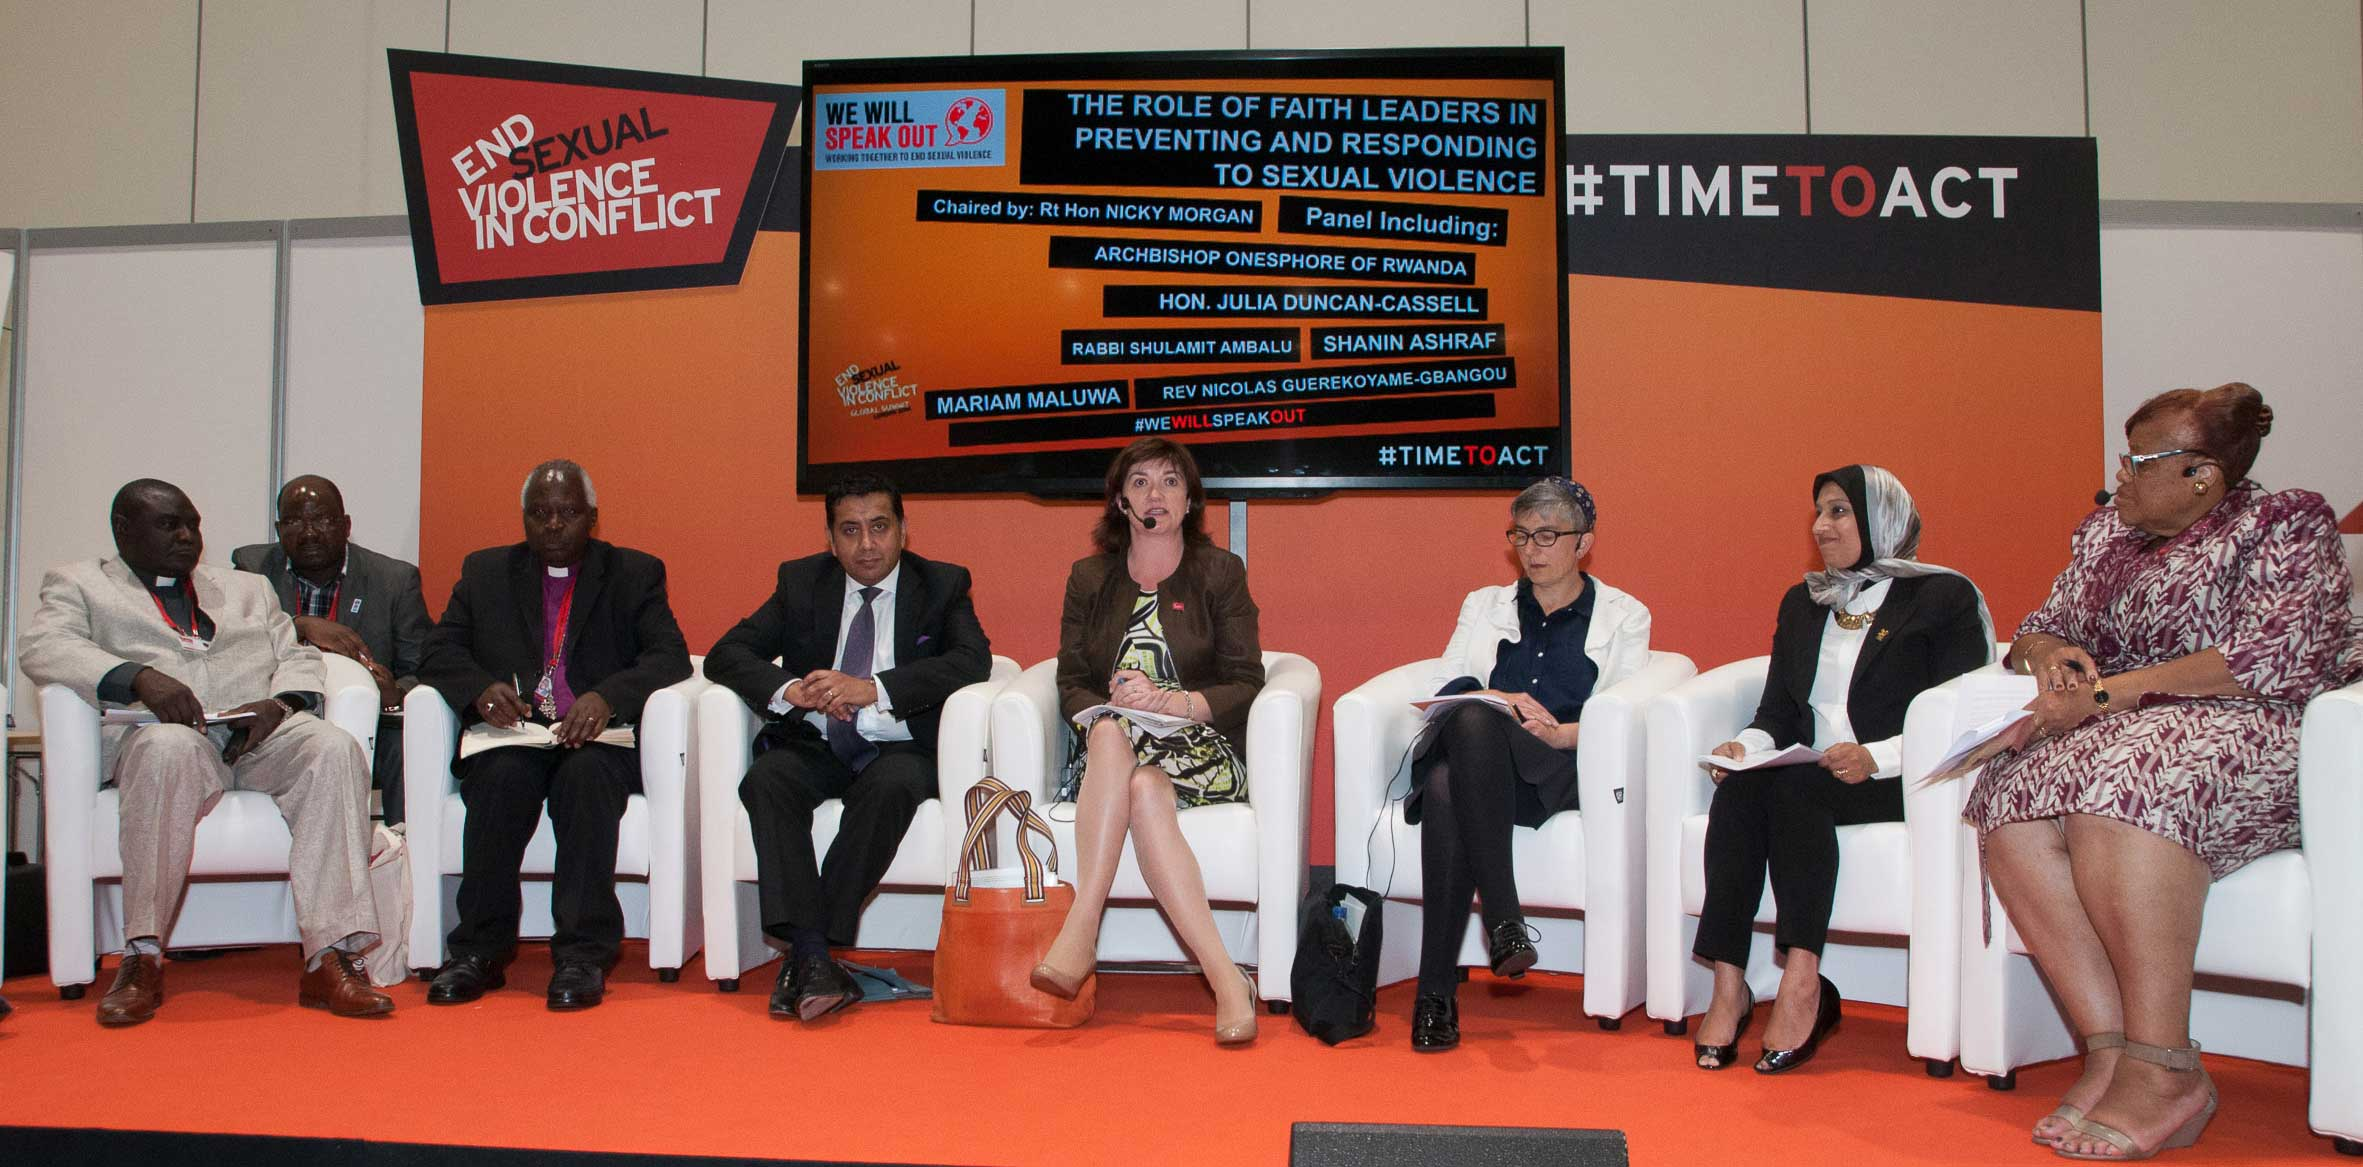 Faith panel at Global Summit to End Sexual Violence